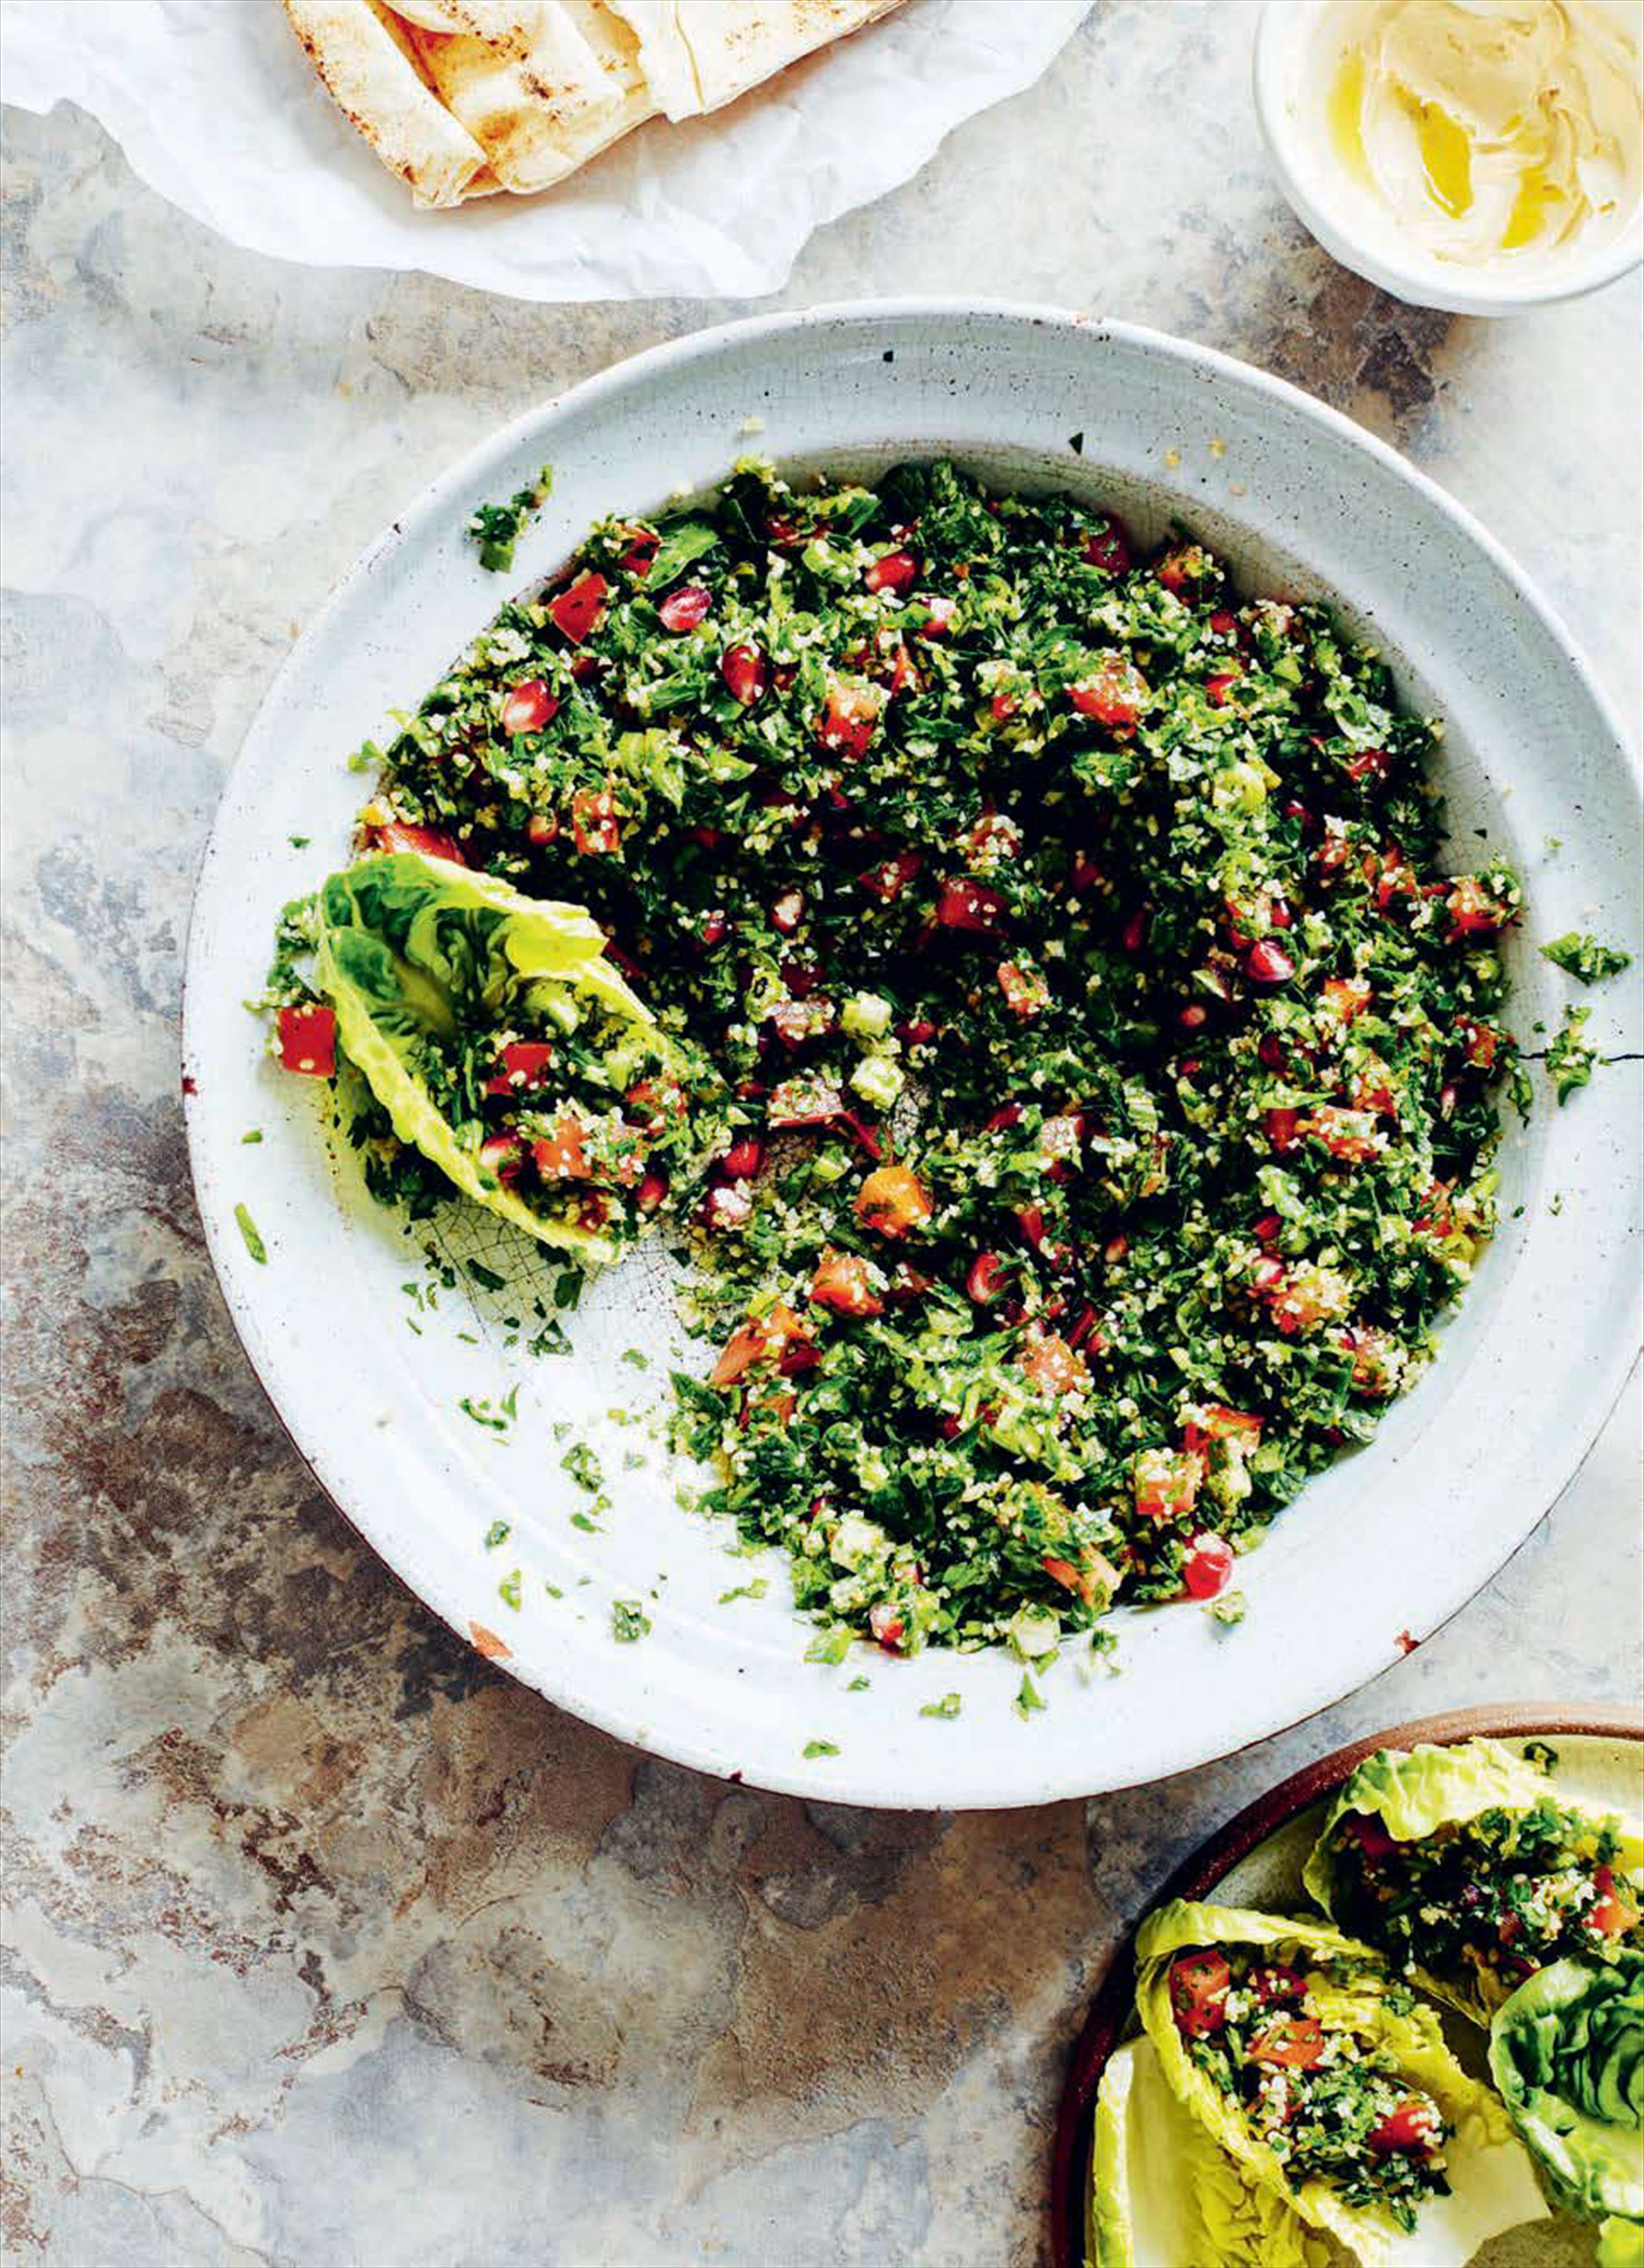 Parsley, tomato and bulgur salad with fresh mint